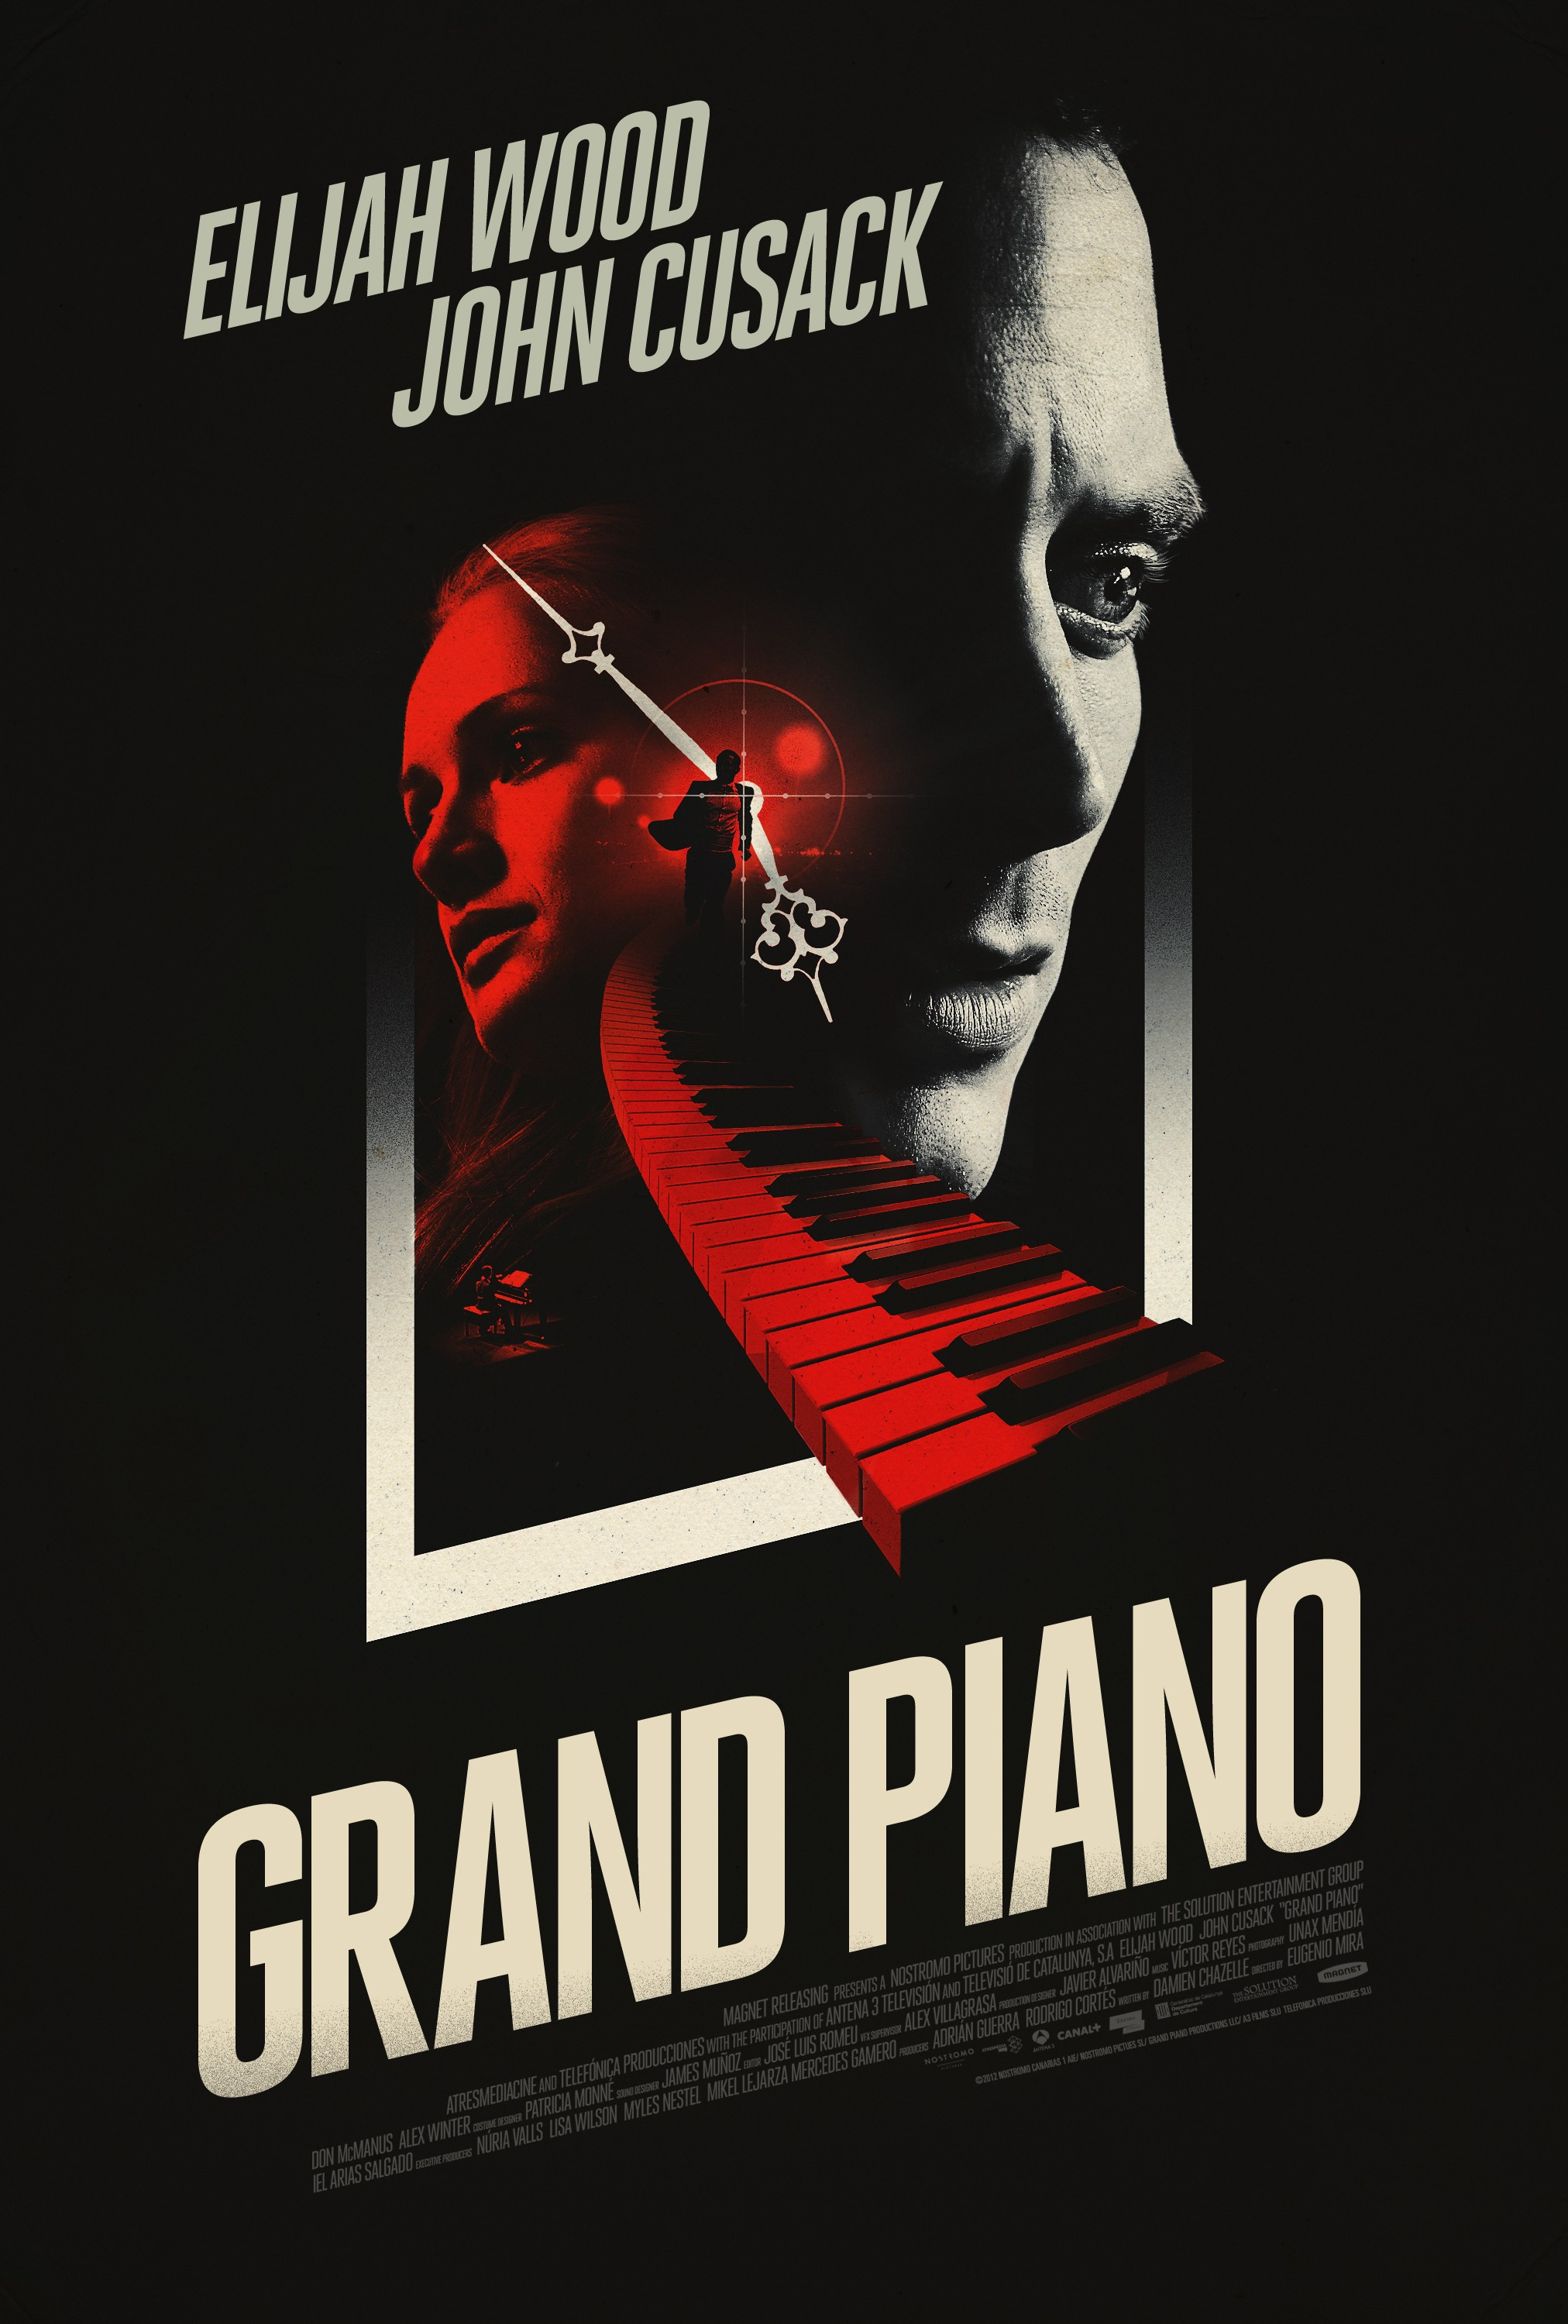 Grand Piano-Official Poster Banner PROMO POSTER XXLG-03FEVEREIRO2014